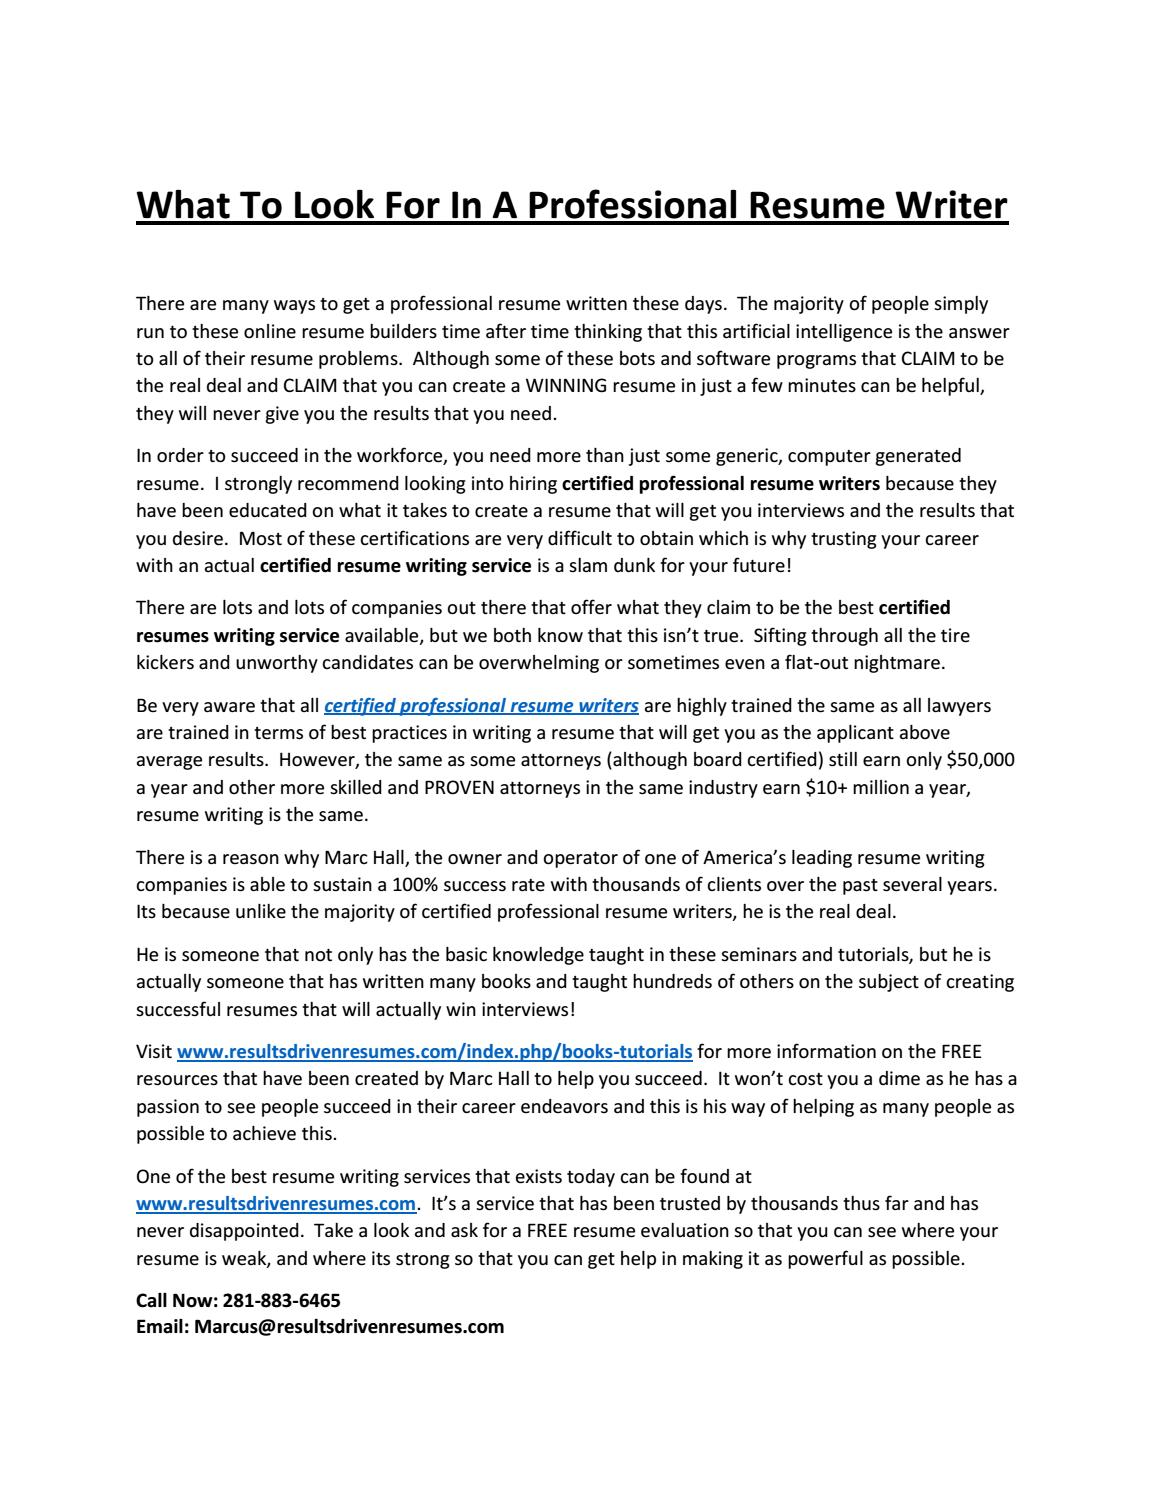 What To Look For In A Professional Resume Writer By Manoj